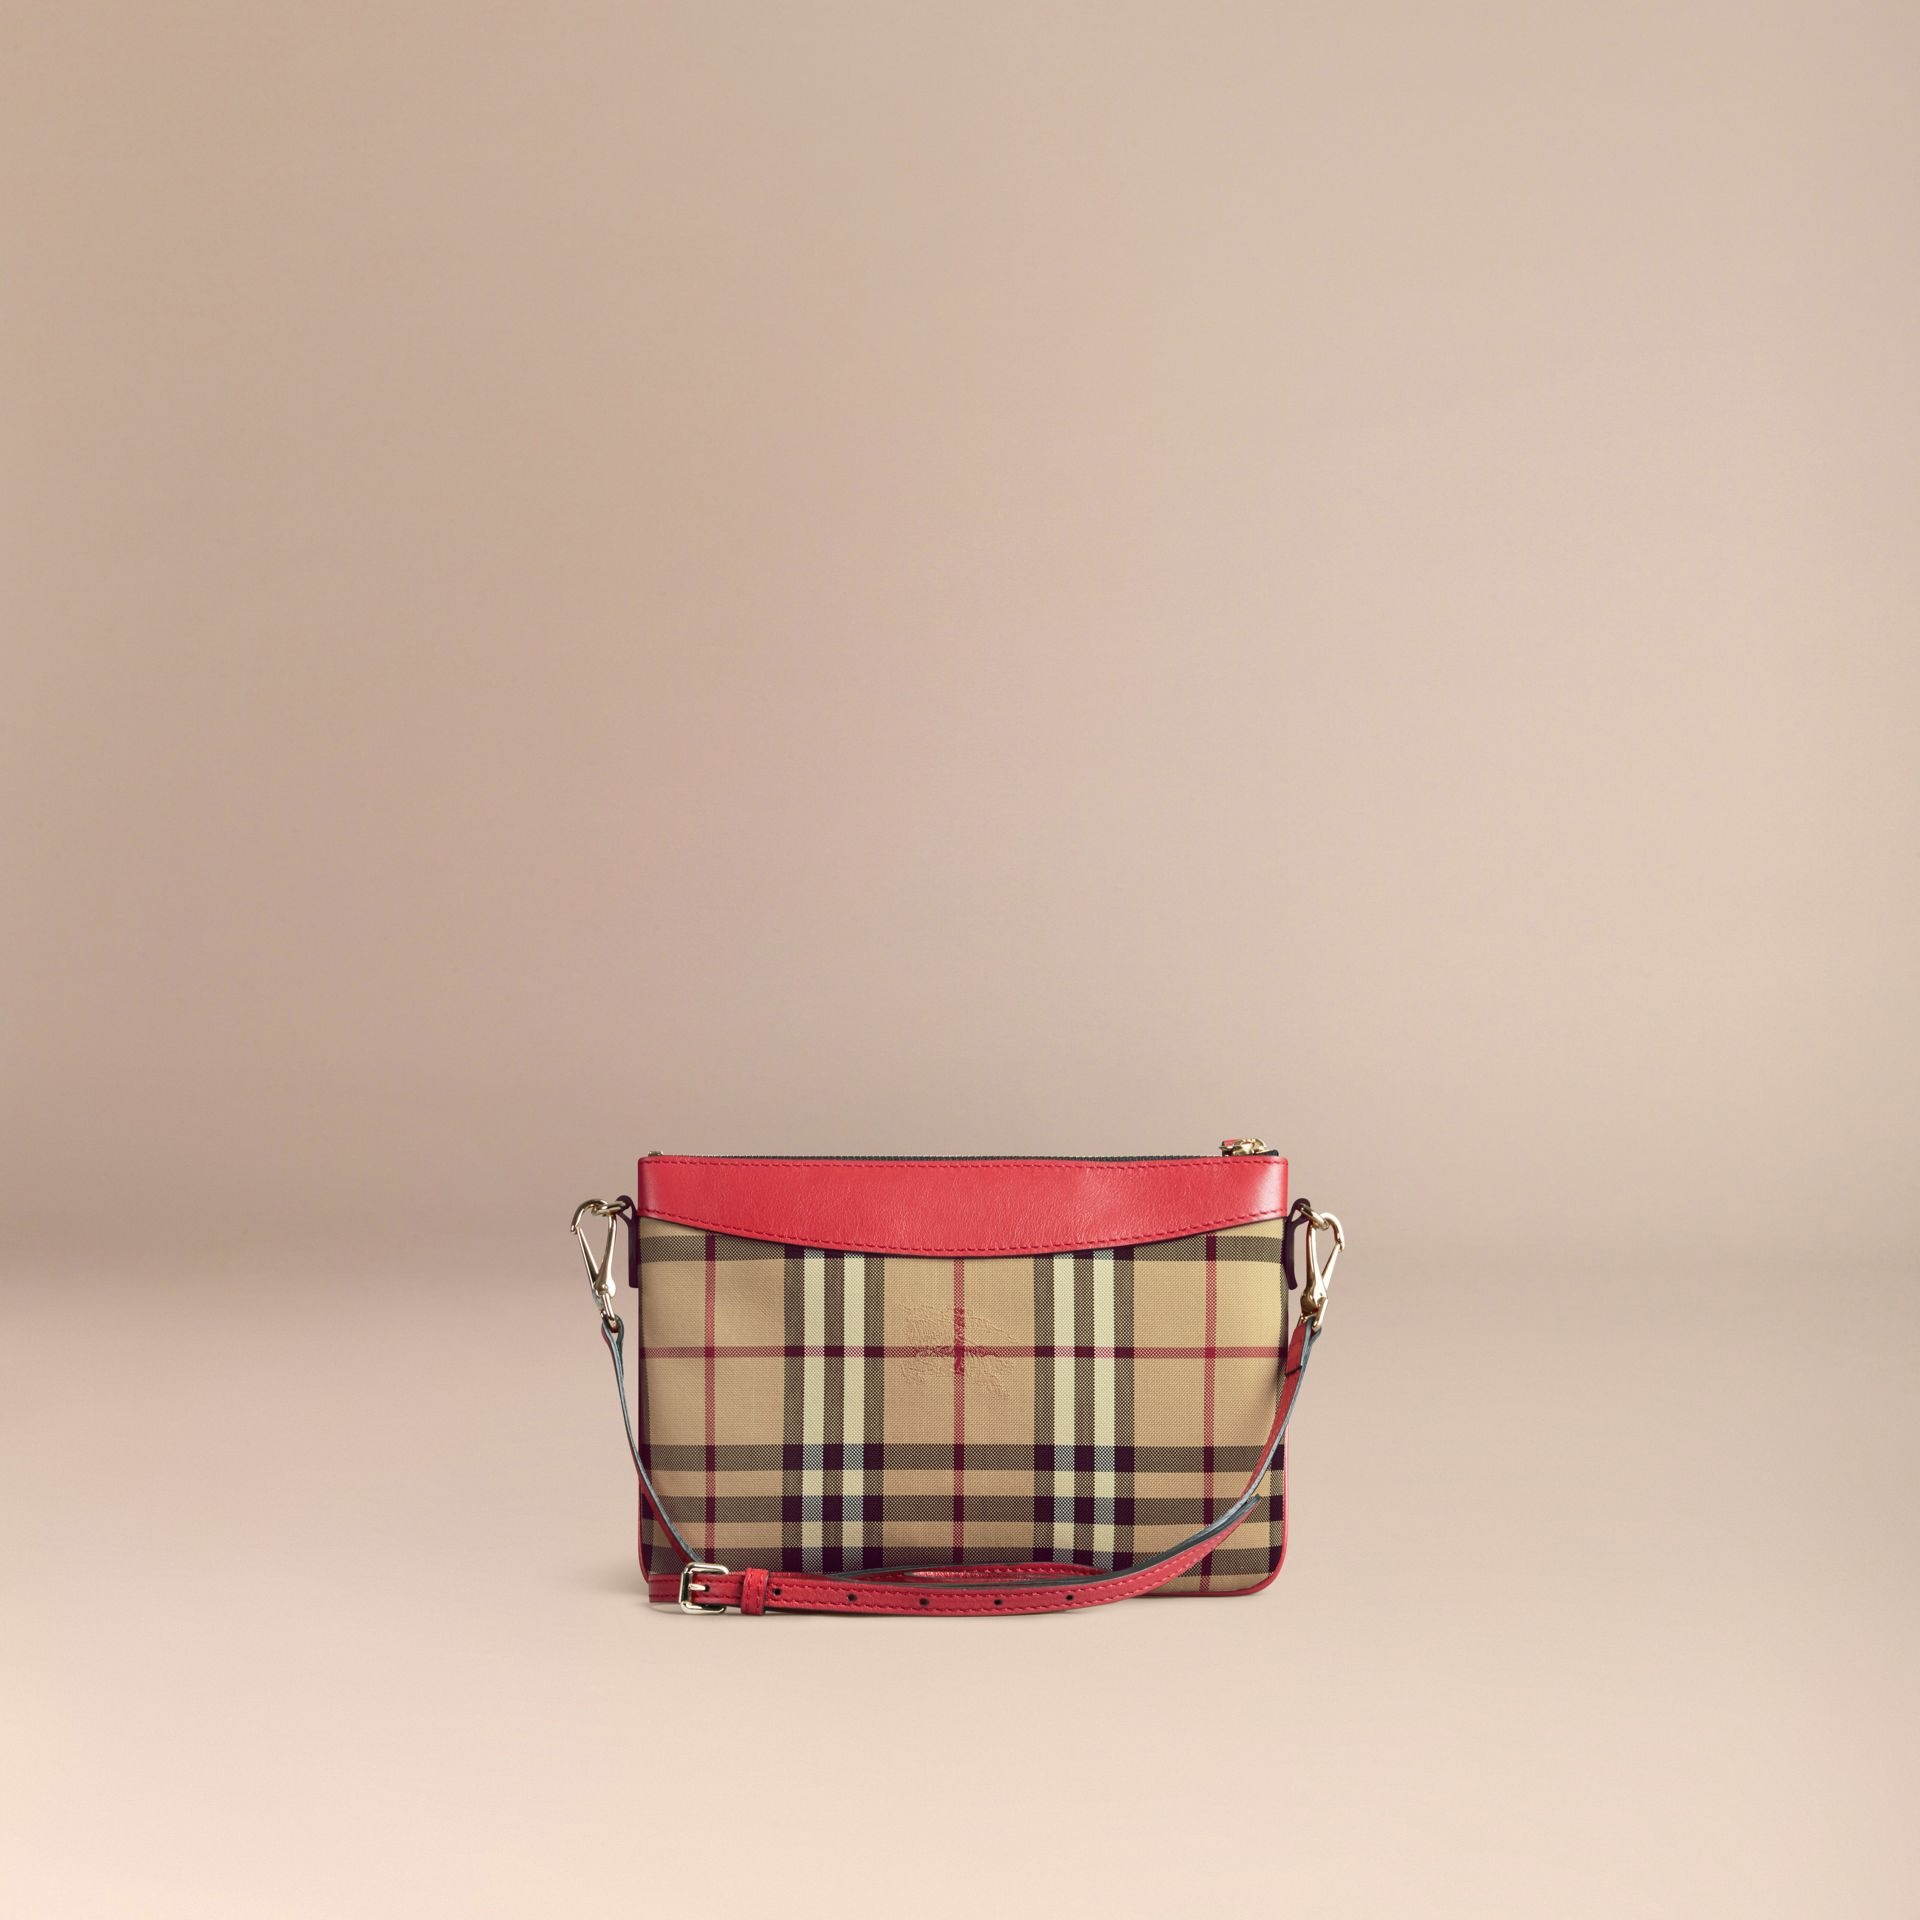 Horseferry Check and Leather Clutch Bag in Parade Red - gallery image 5